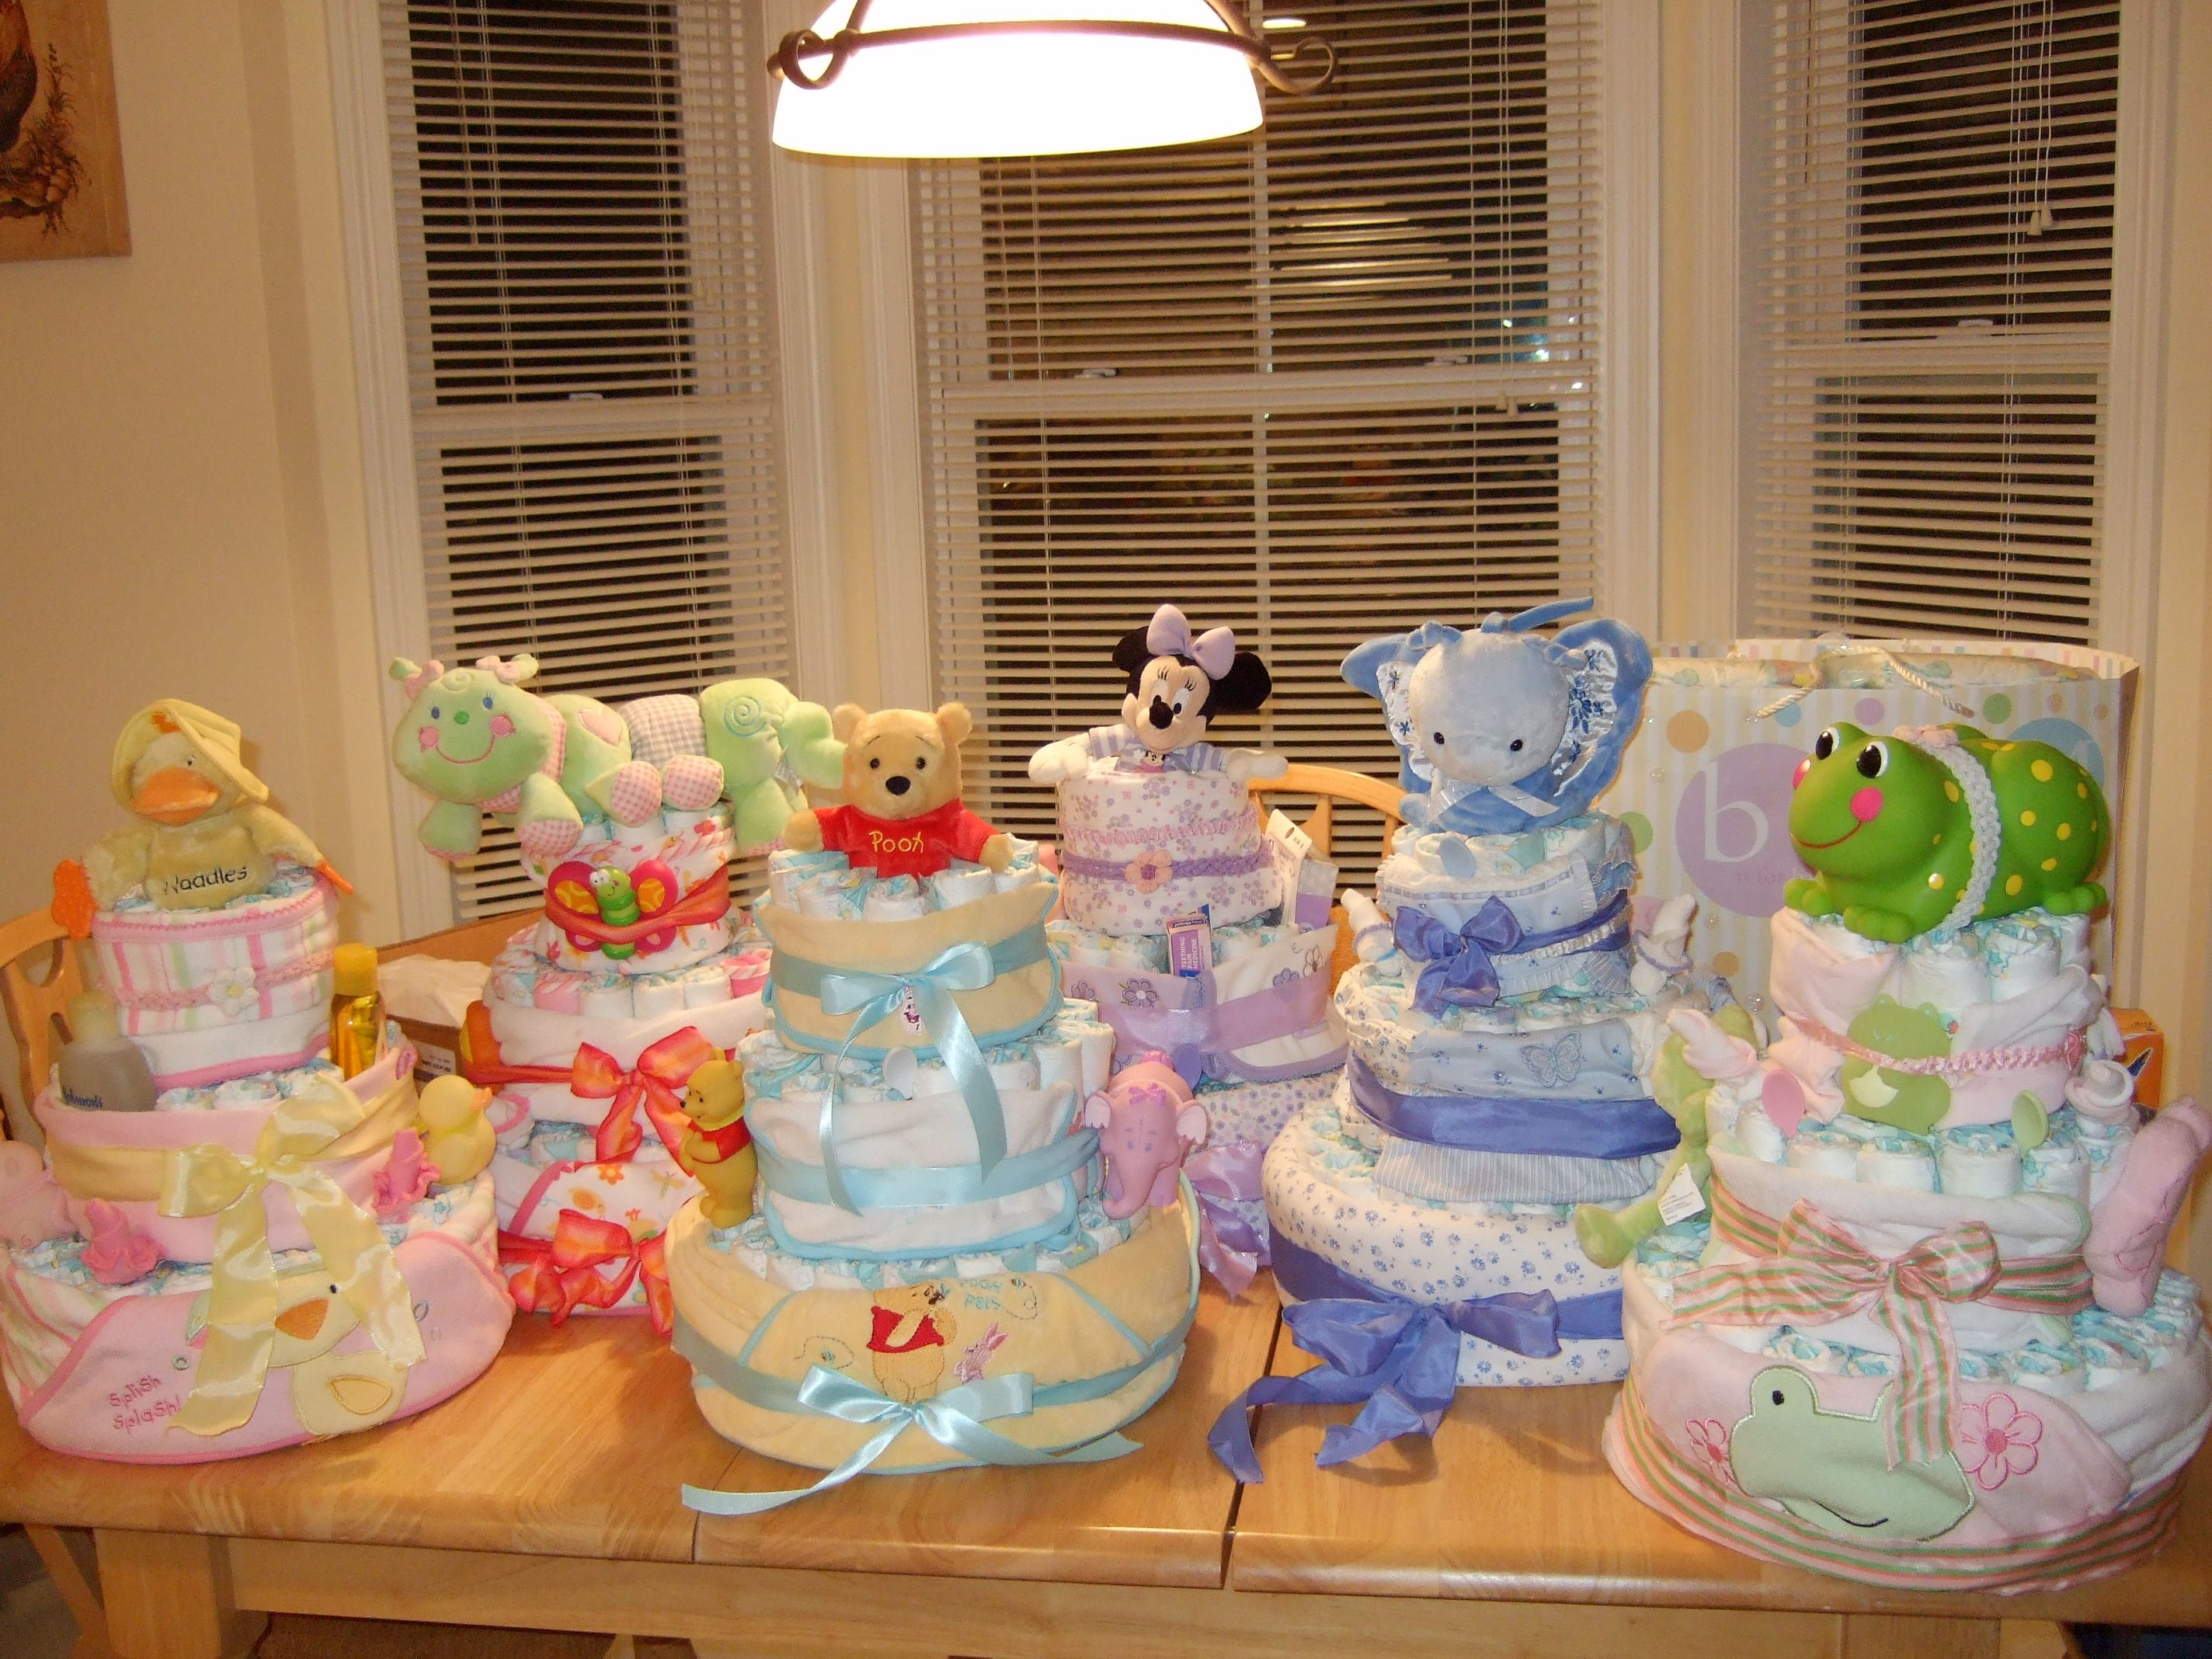 Diaper cakes I made to be centerpieces at a baby shower